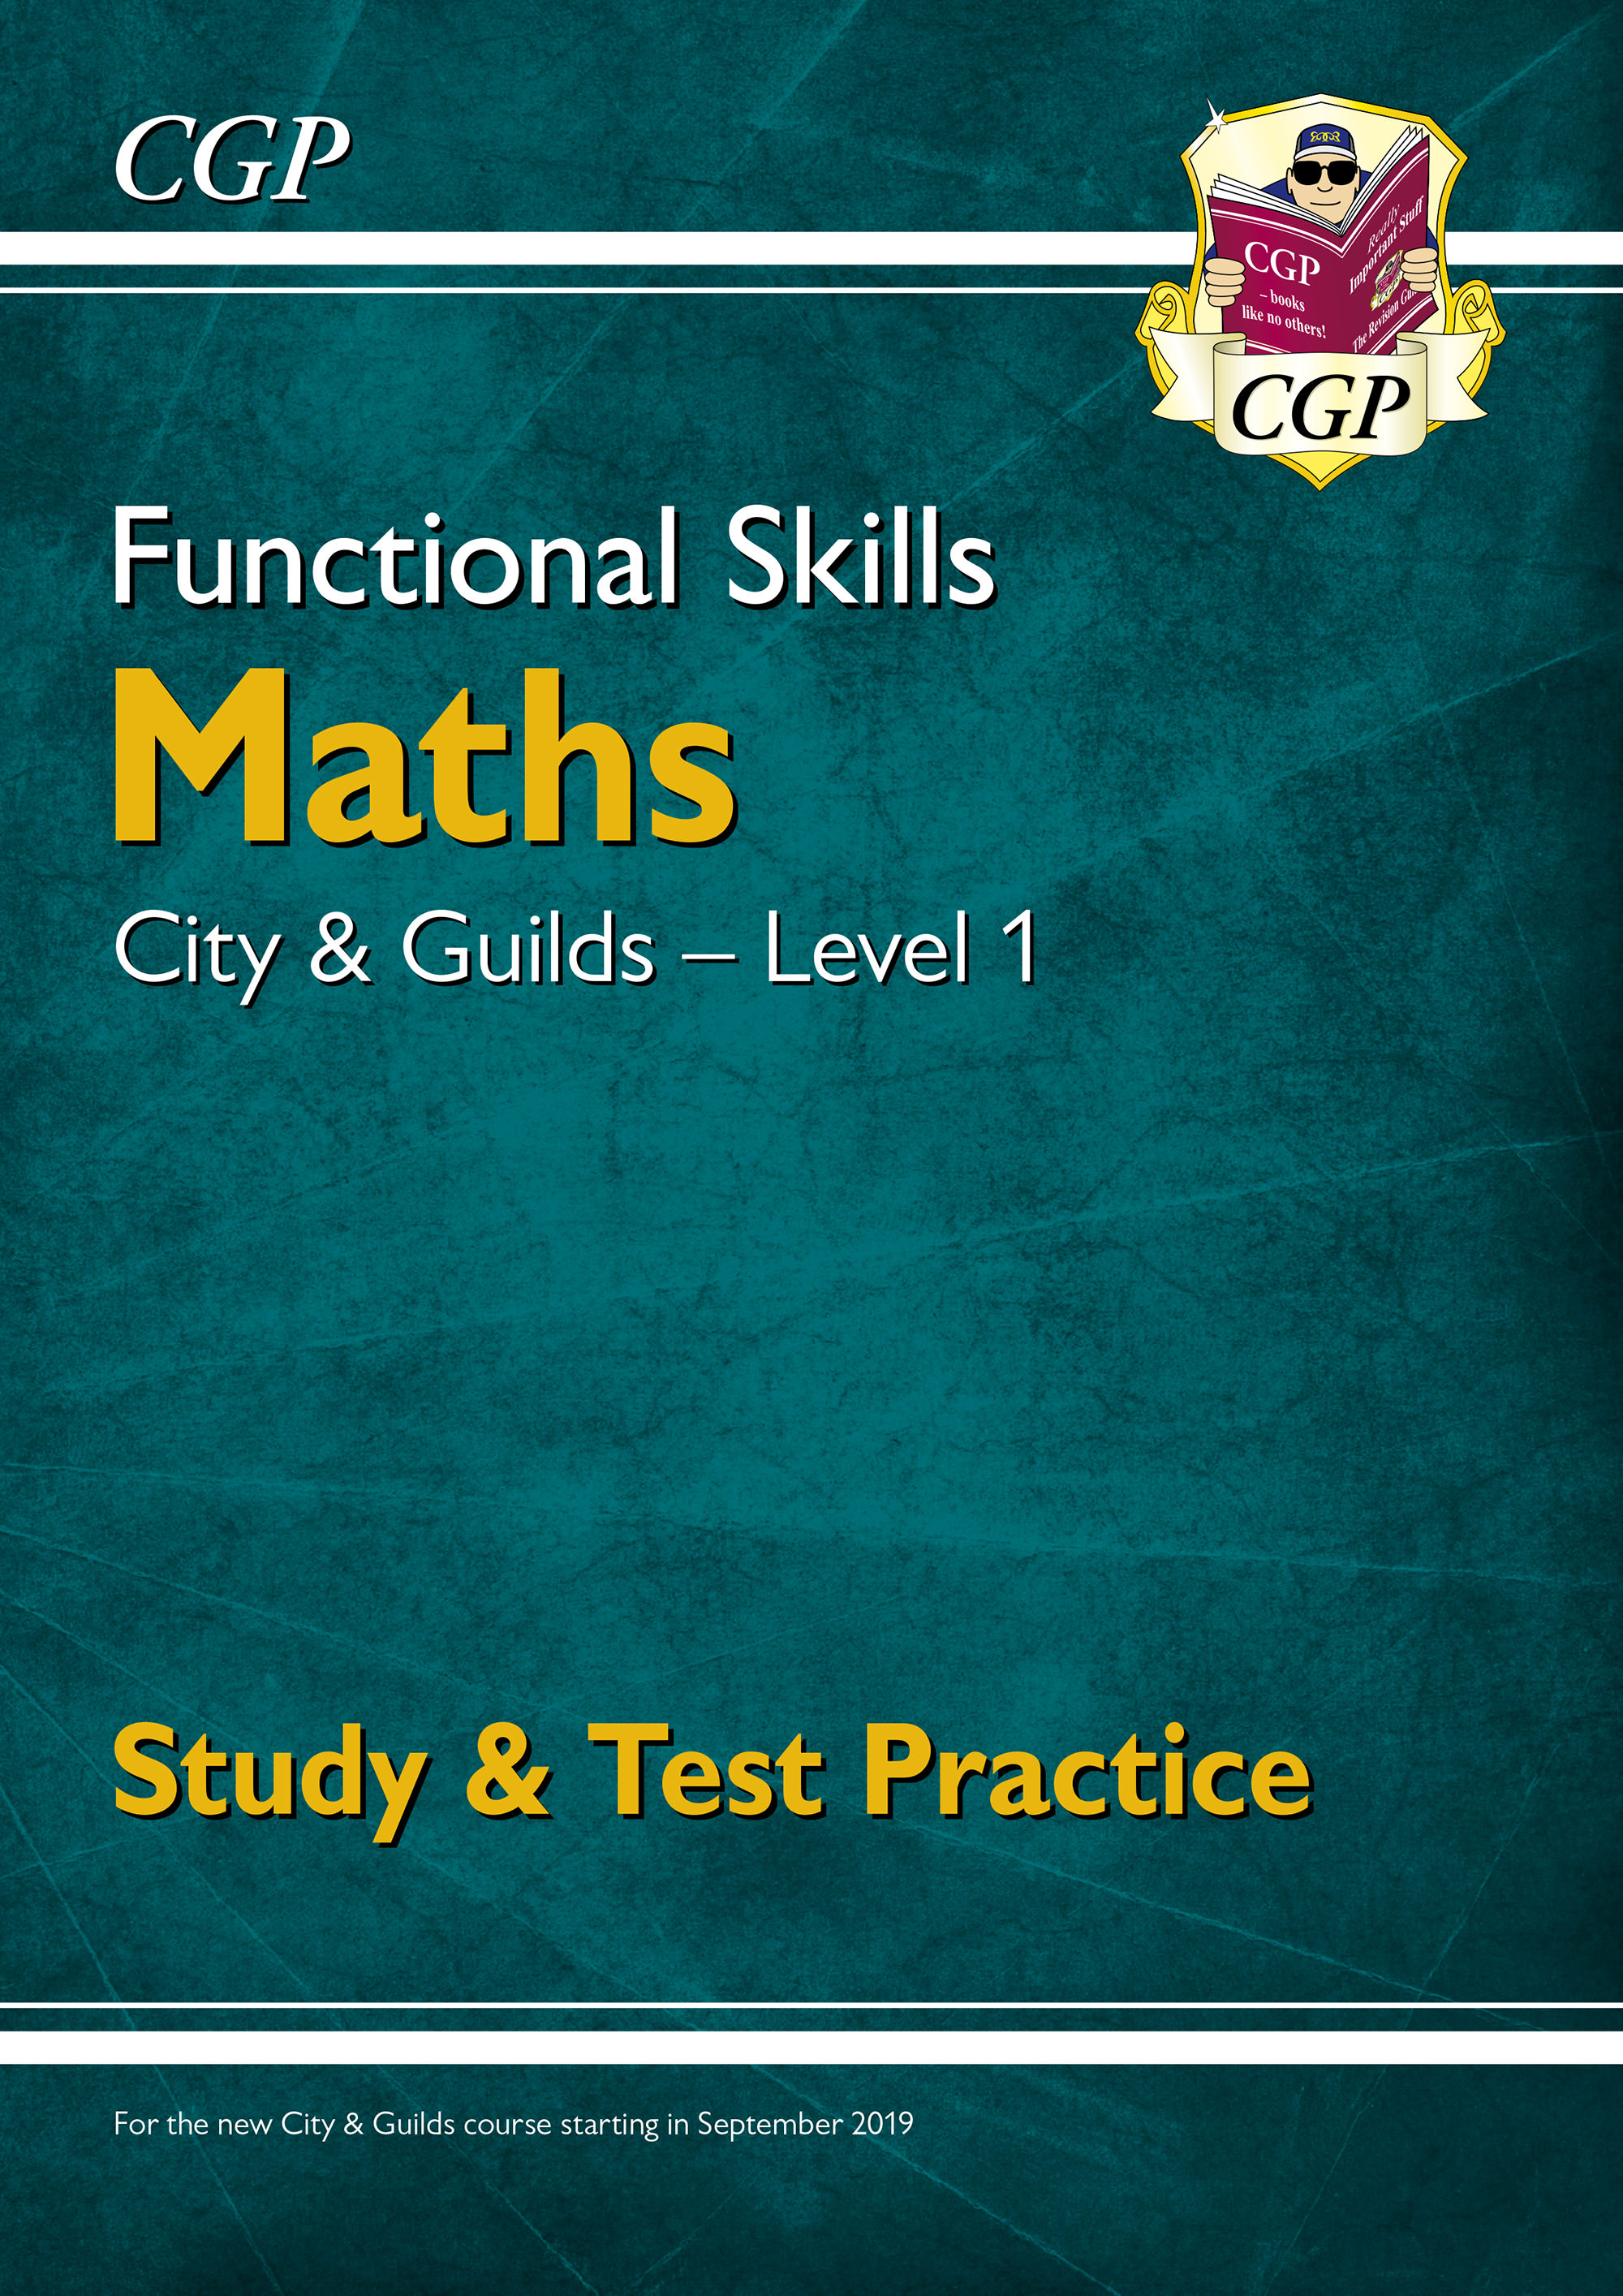 M1CGSRA1D - New Functional Skills Maths: City & Guilds Level 1 -Study & Test Practice (for 2020 & be